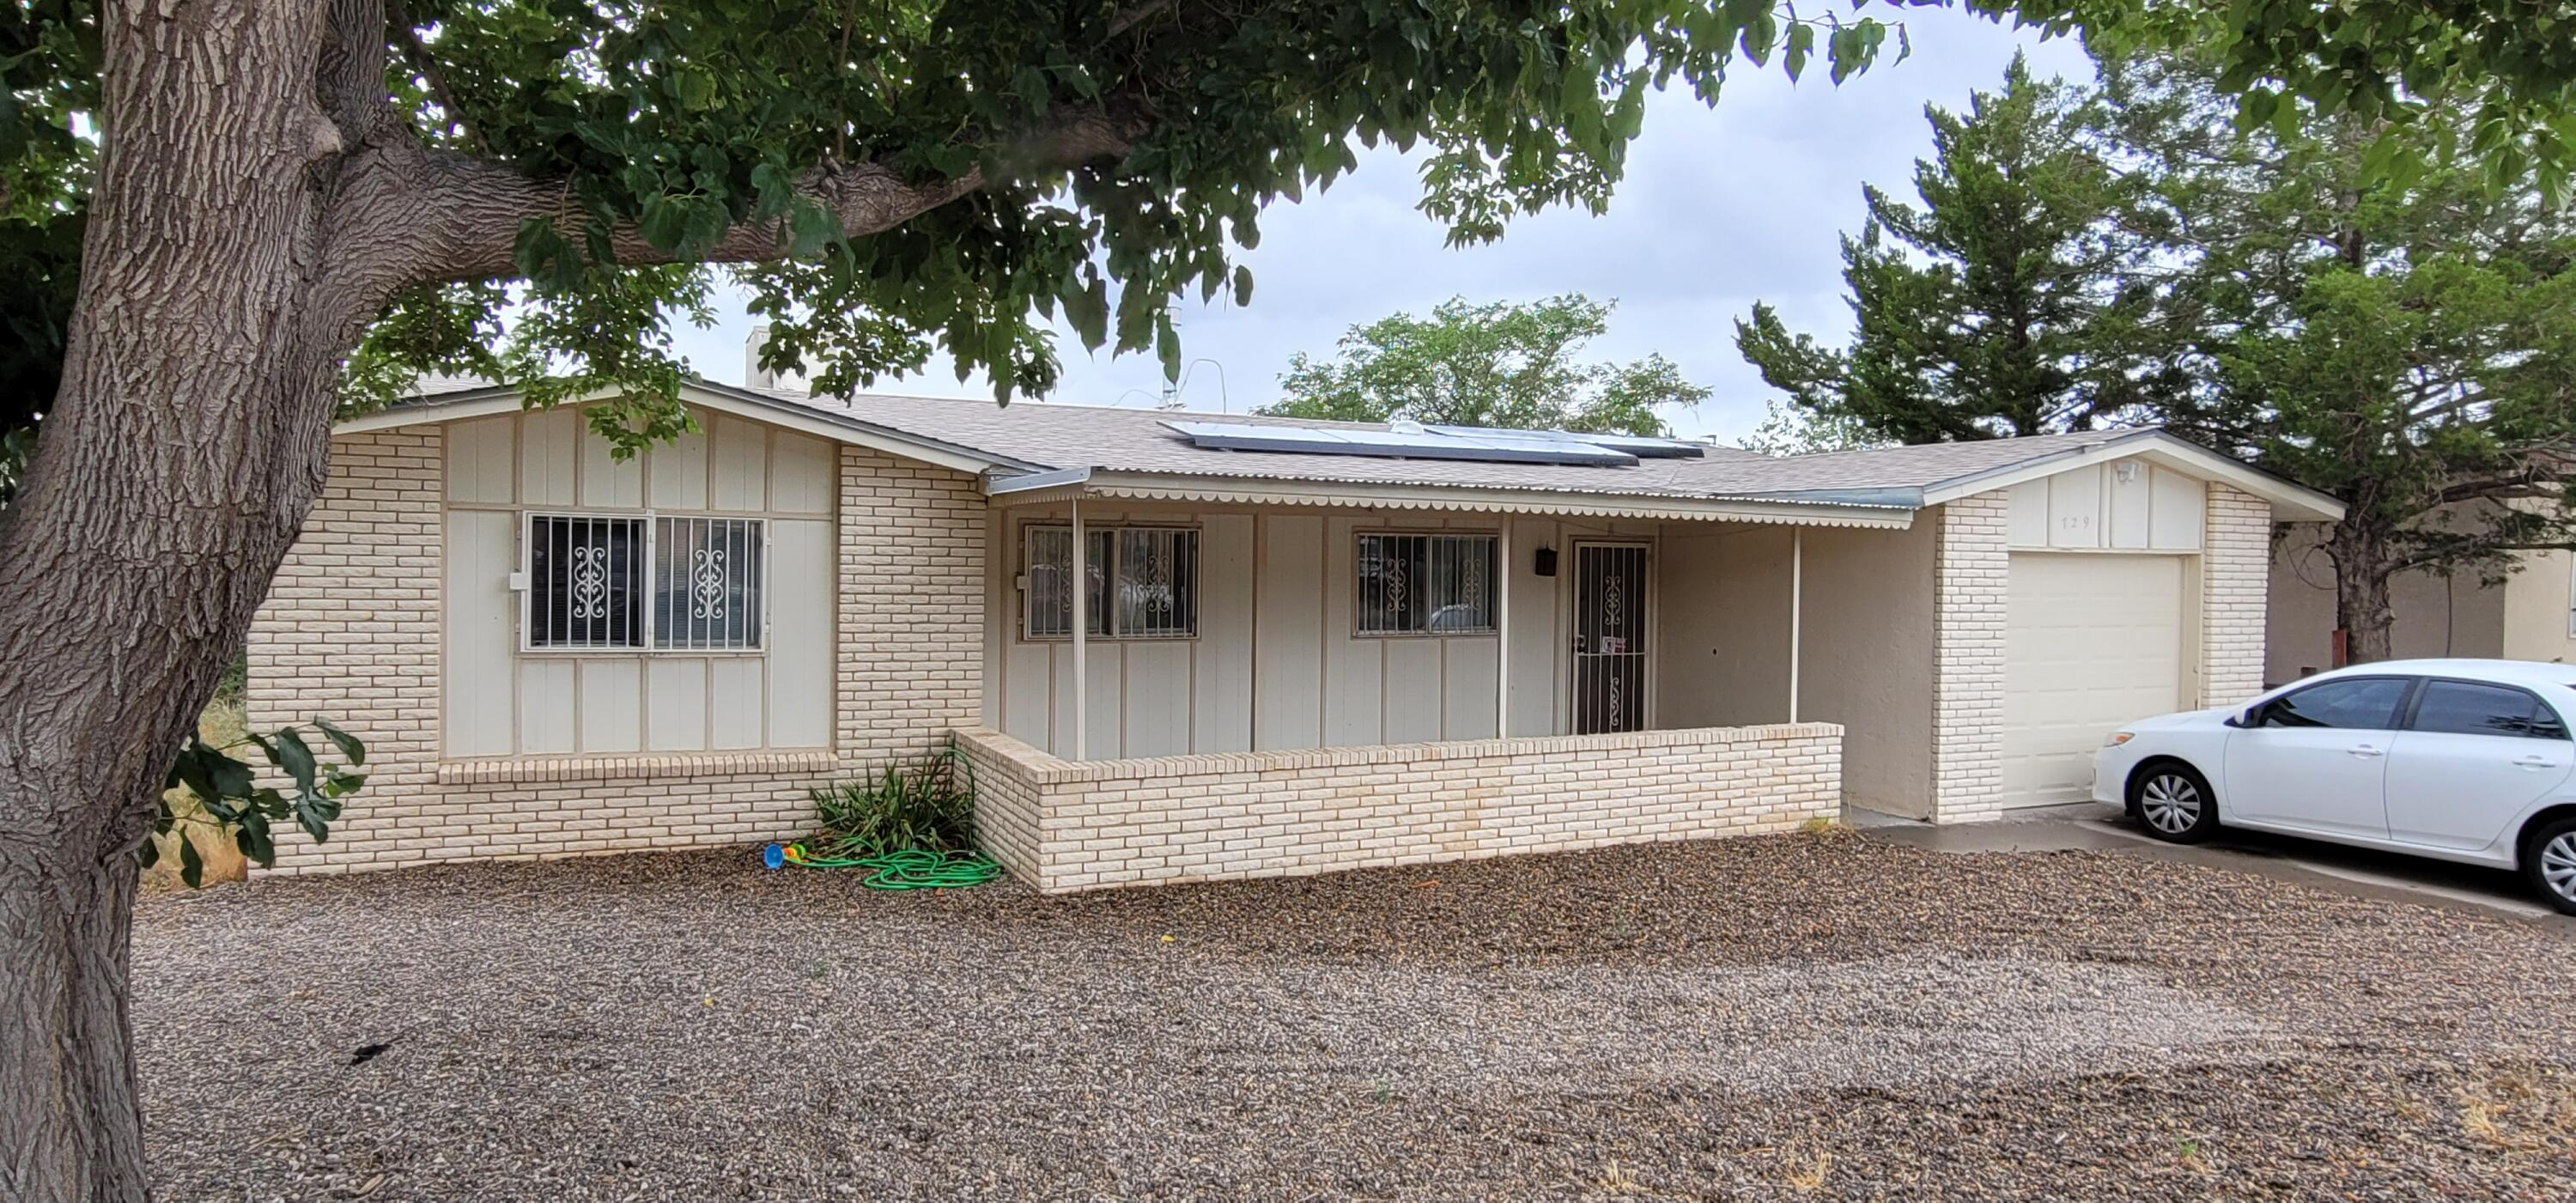 Check out this beautiful 4bd 2 ba home in the NE Heights! New water heater, roof is 2yrs old, garage door is 1yr old. Come see today as it will go fast!